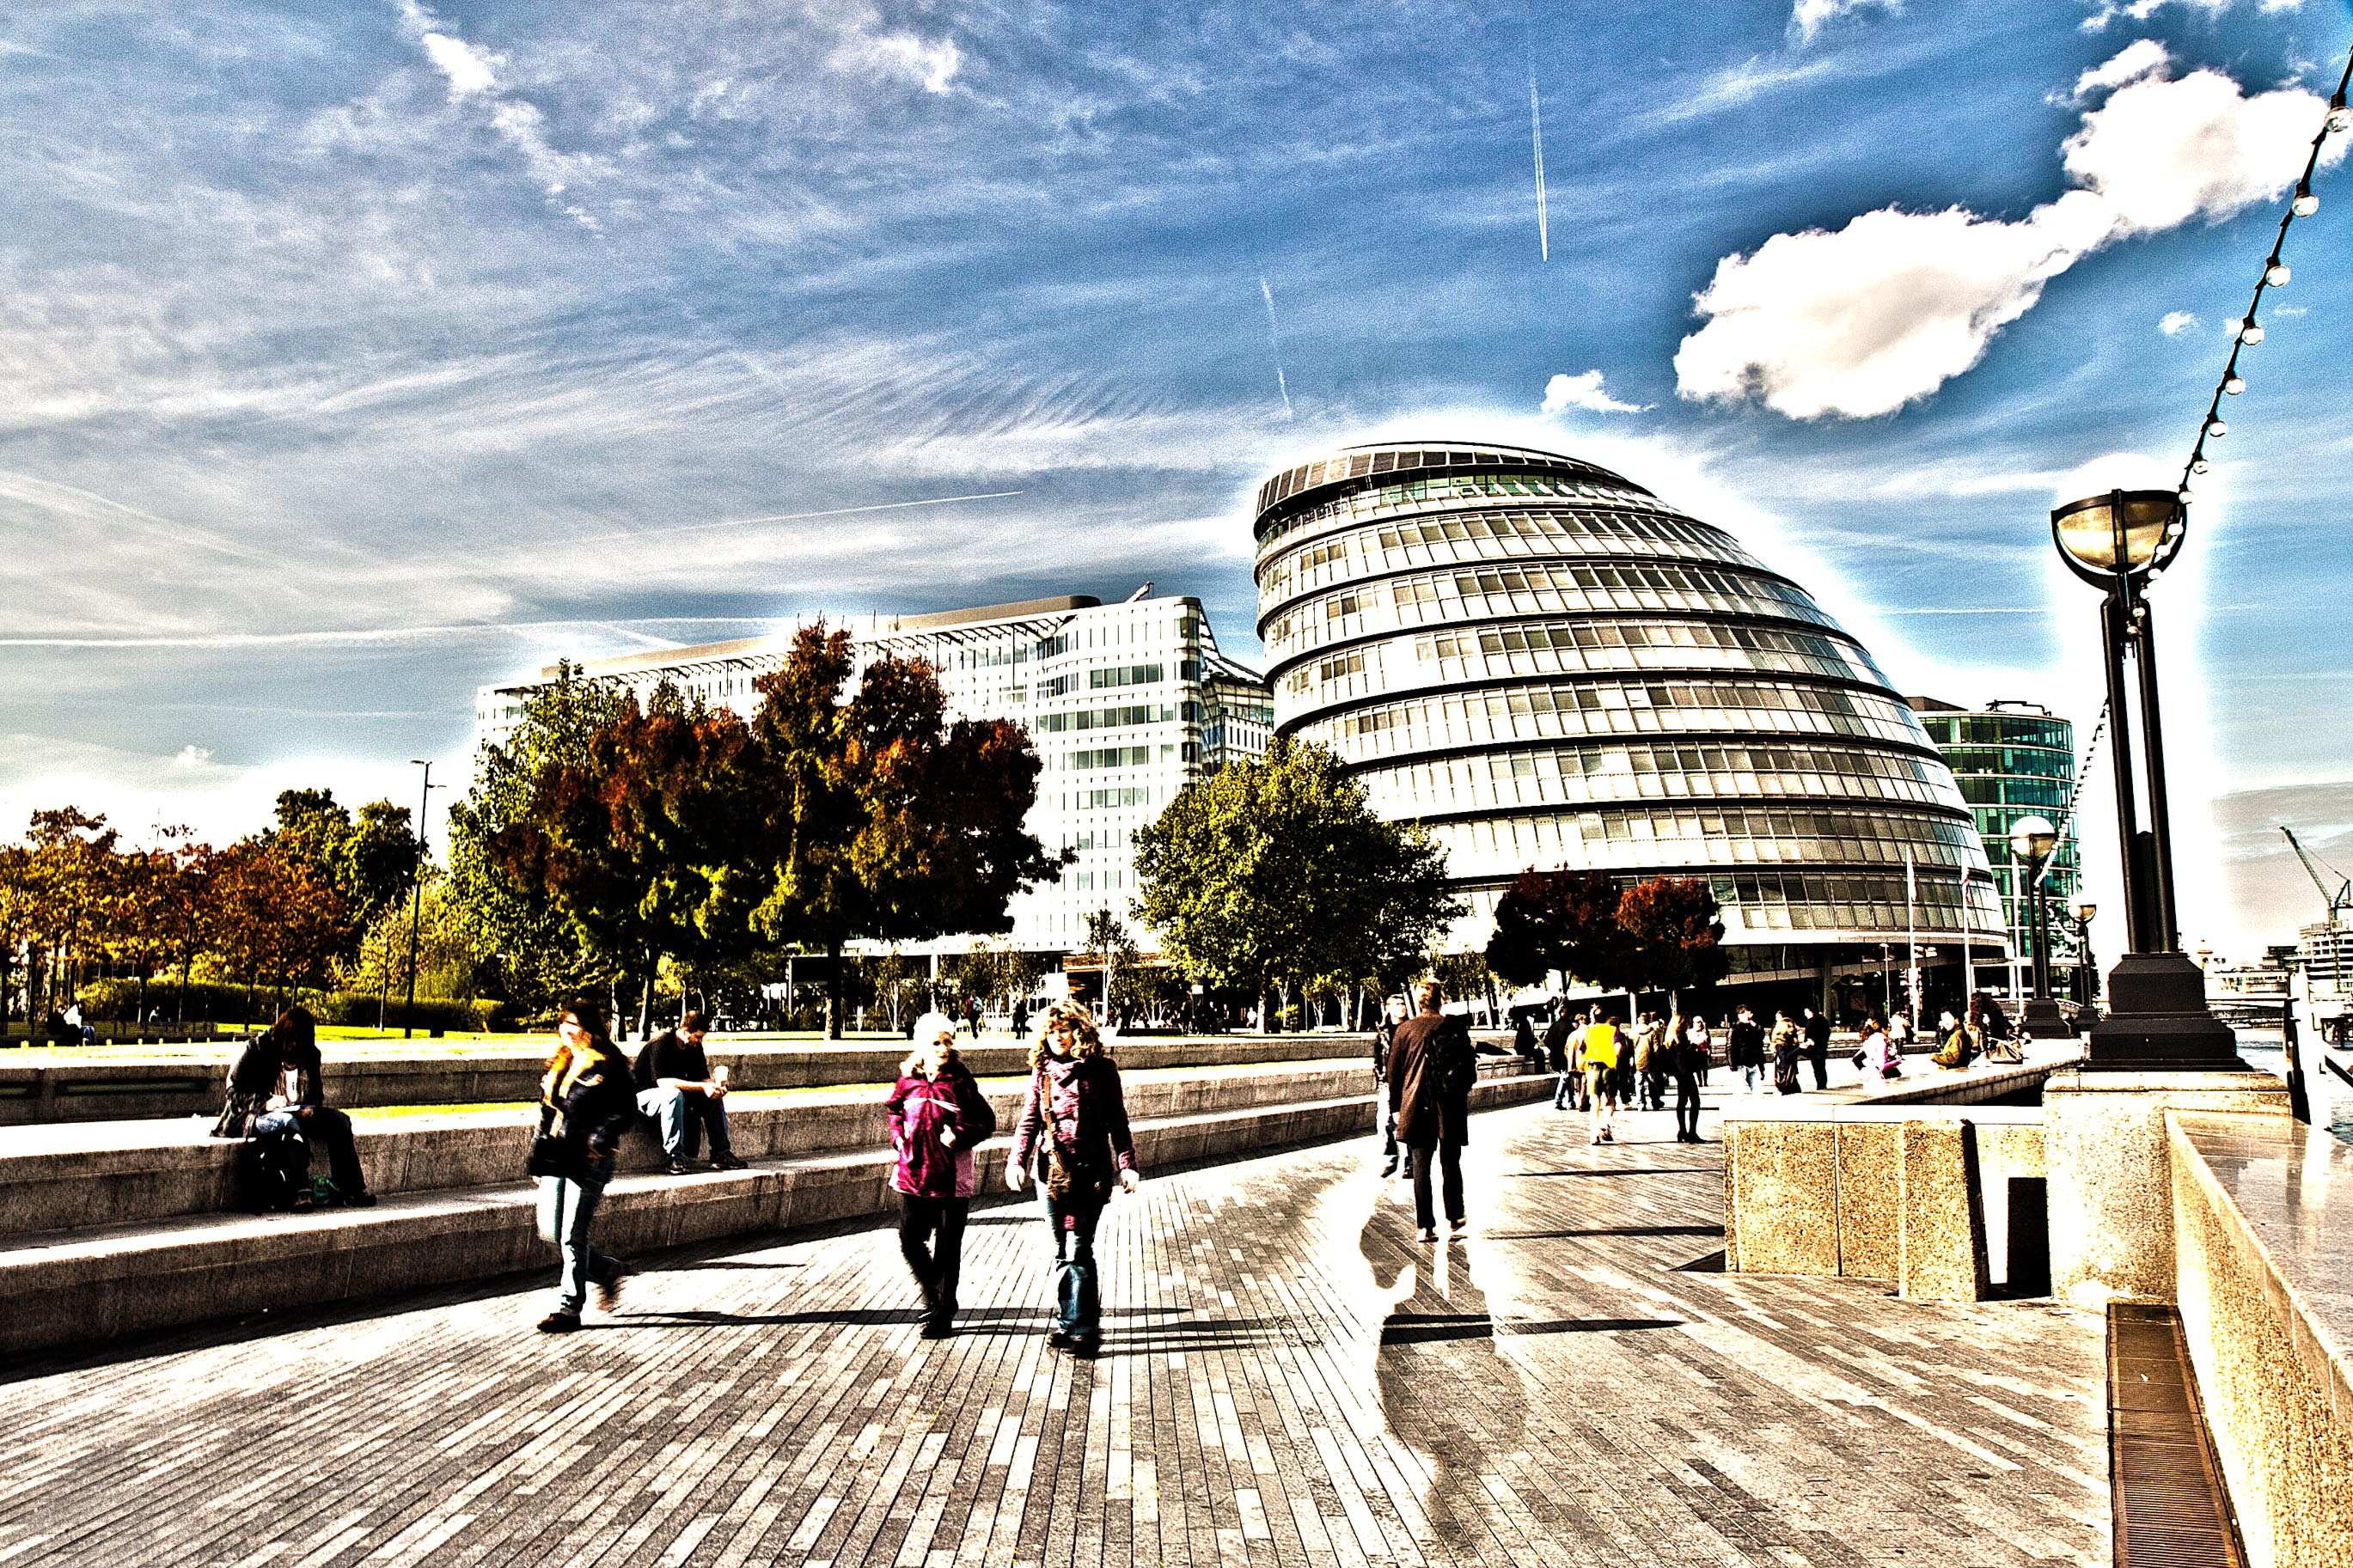 City Hall and Queen's Walk – HDR